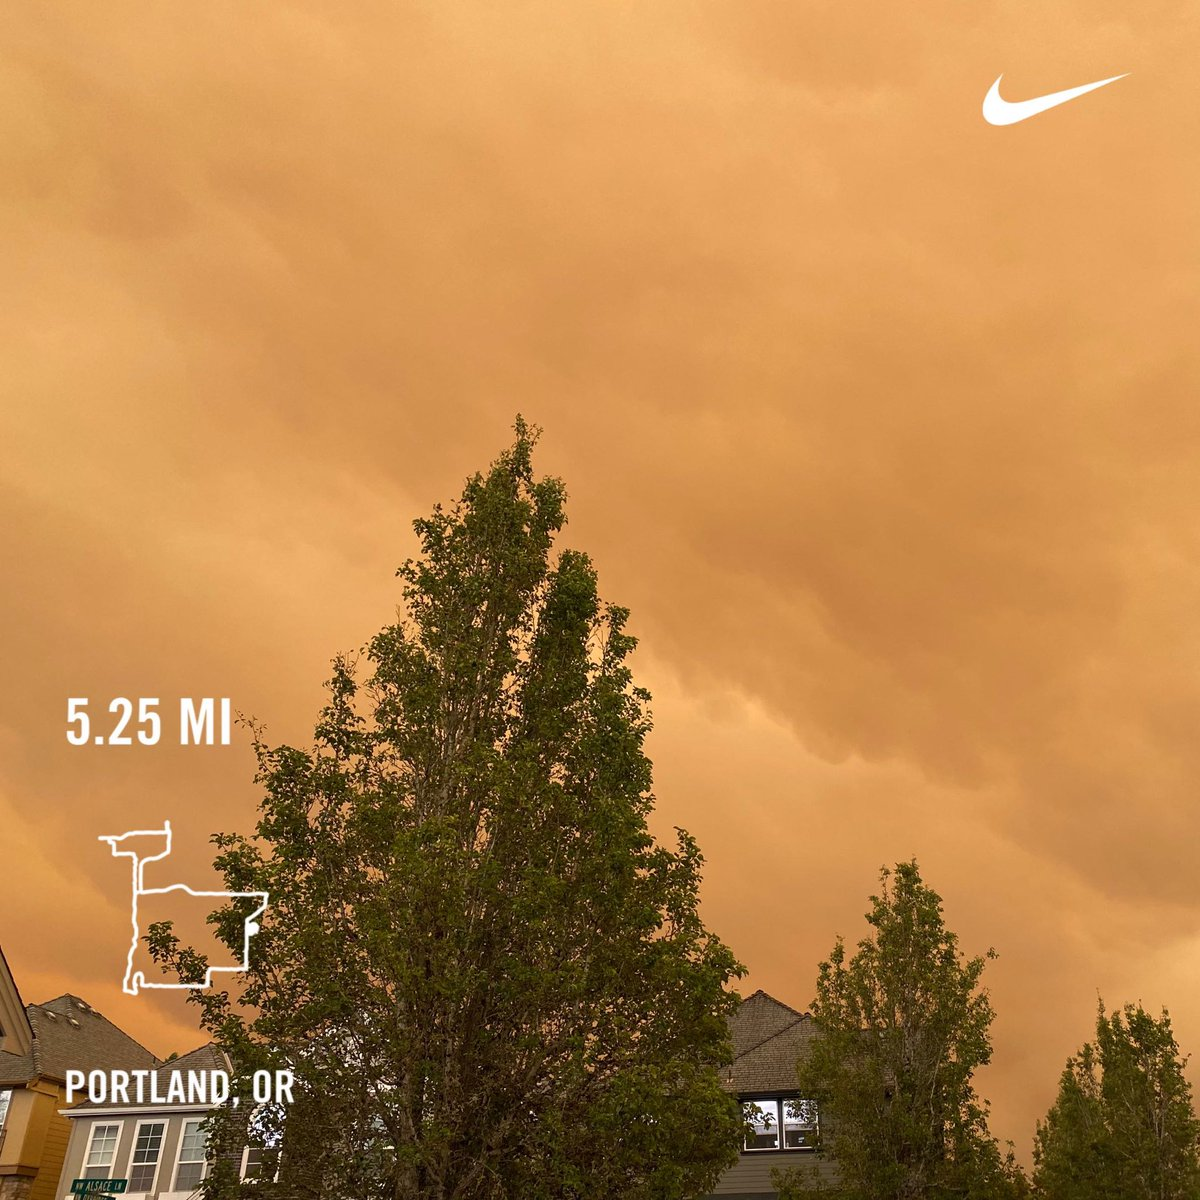 Thick smoke over Portland from many wild 🔥 in Oregon. Praying 🙏 for all who are in danger and evacuation zone. Ran 5.25 miles with Nike Run Club #nrc #nikerunning #nike #justdoit #youcantstopus #playfortheworld #socialdistancerunning https://t.co/TlK8Ya16bY